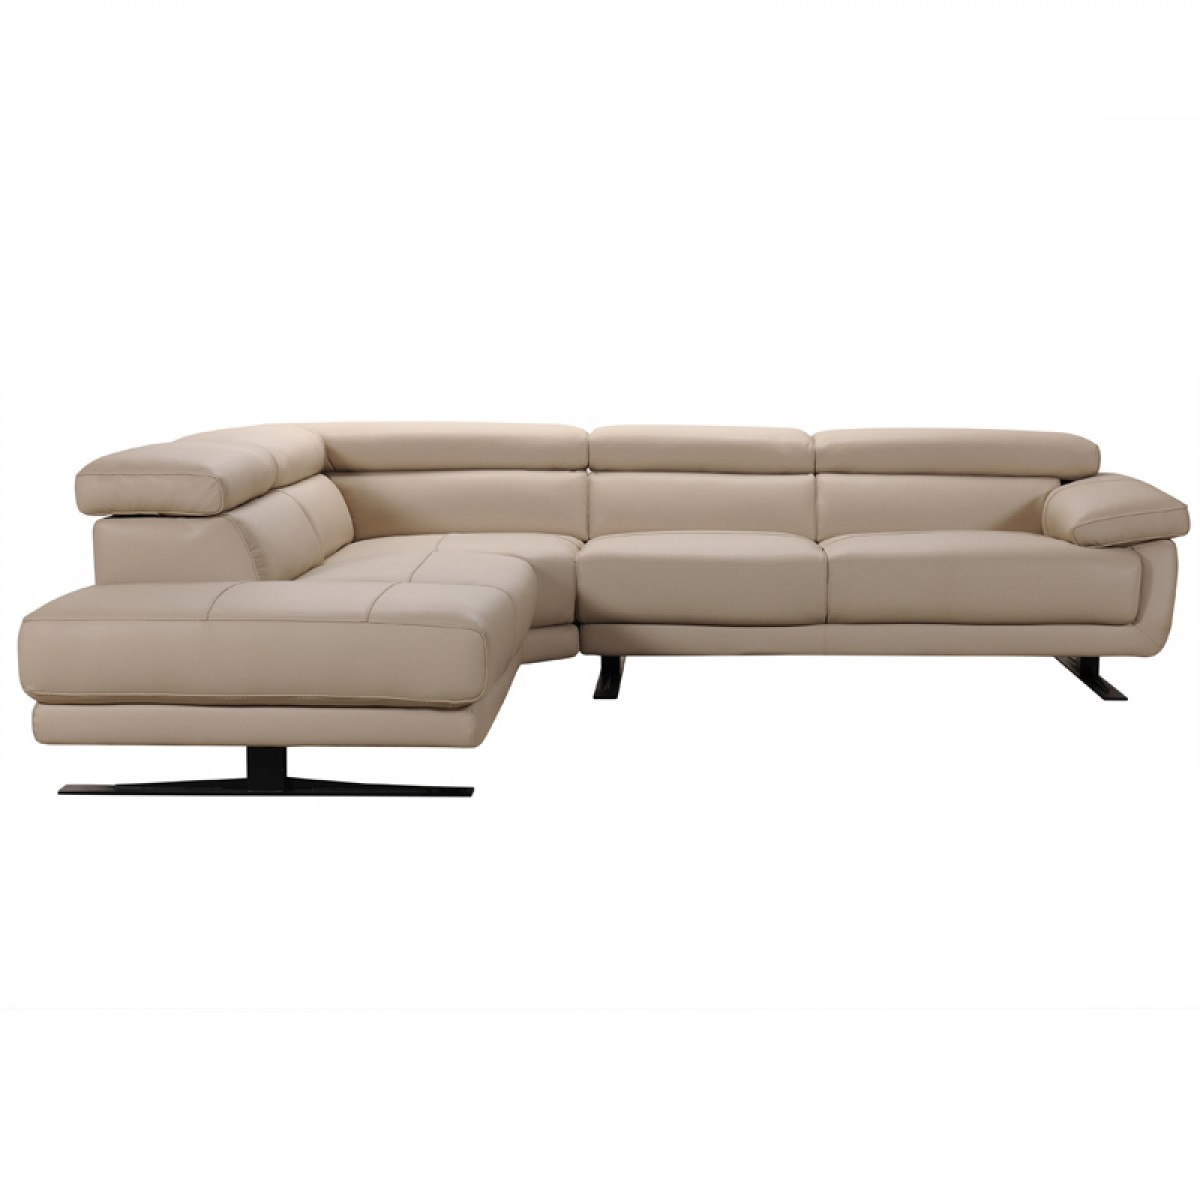 taupe color leather sofa the best bed in world divani casa gypsum modern sectional